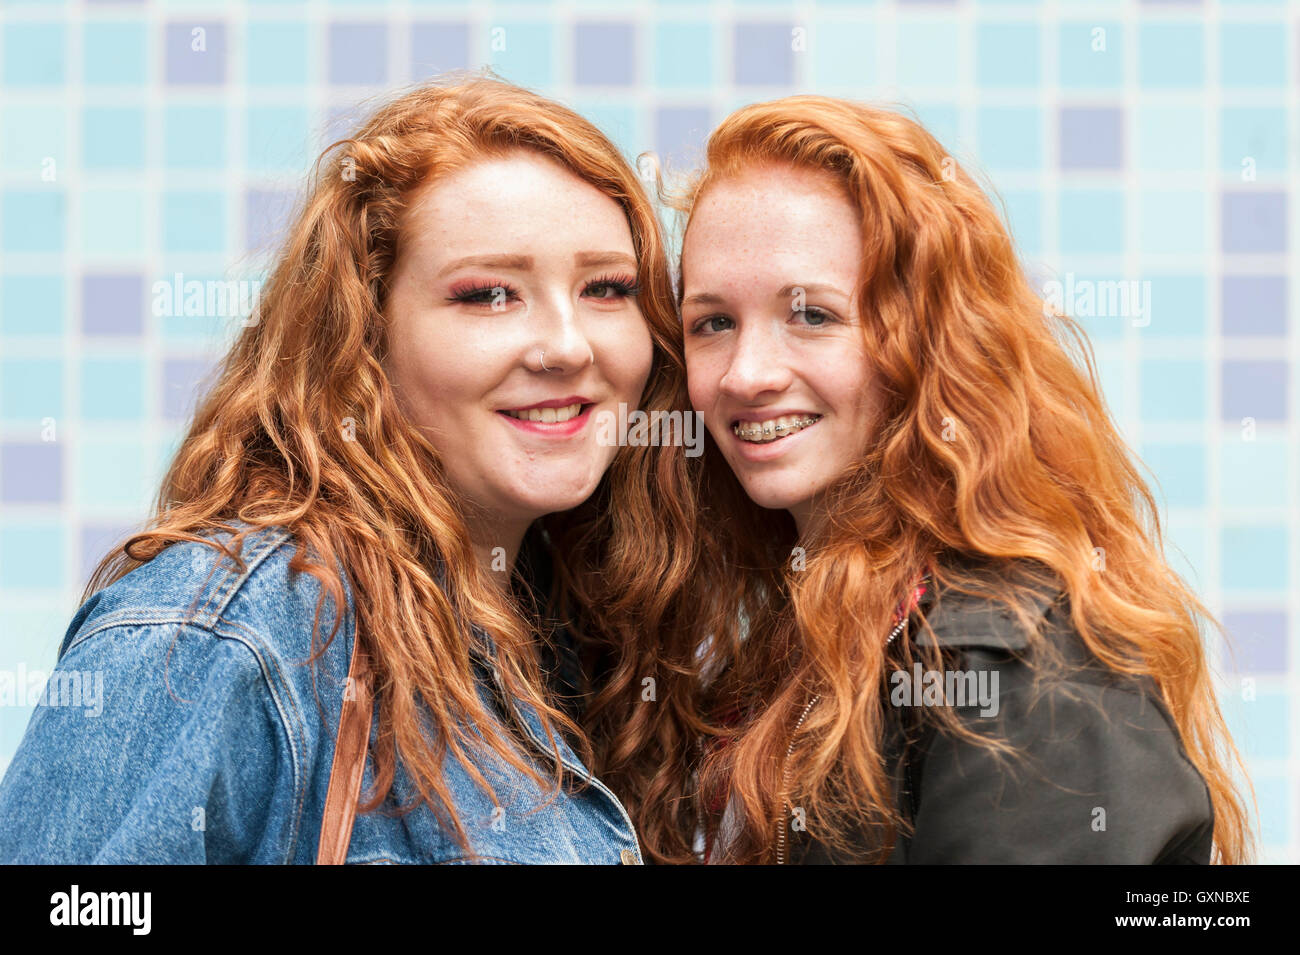 London, UK. 17th September, 2016.   Red-haired friends pose against a mosaic backdrop.  Ginger, auburn and redheaded - Stock Image